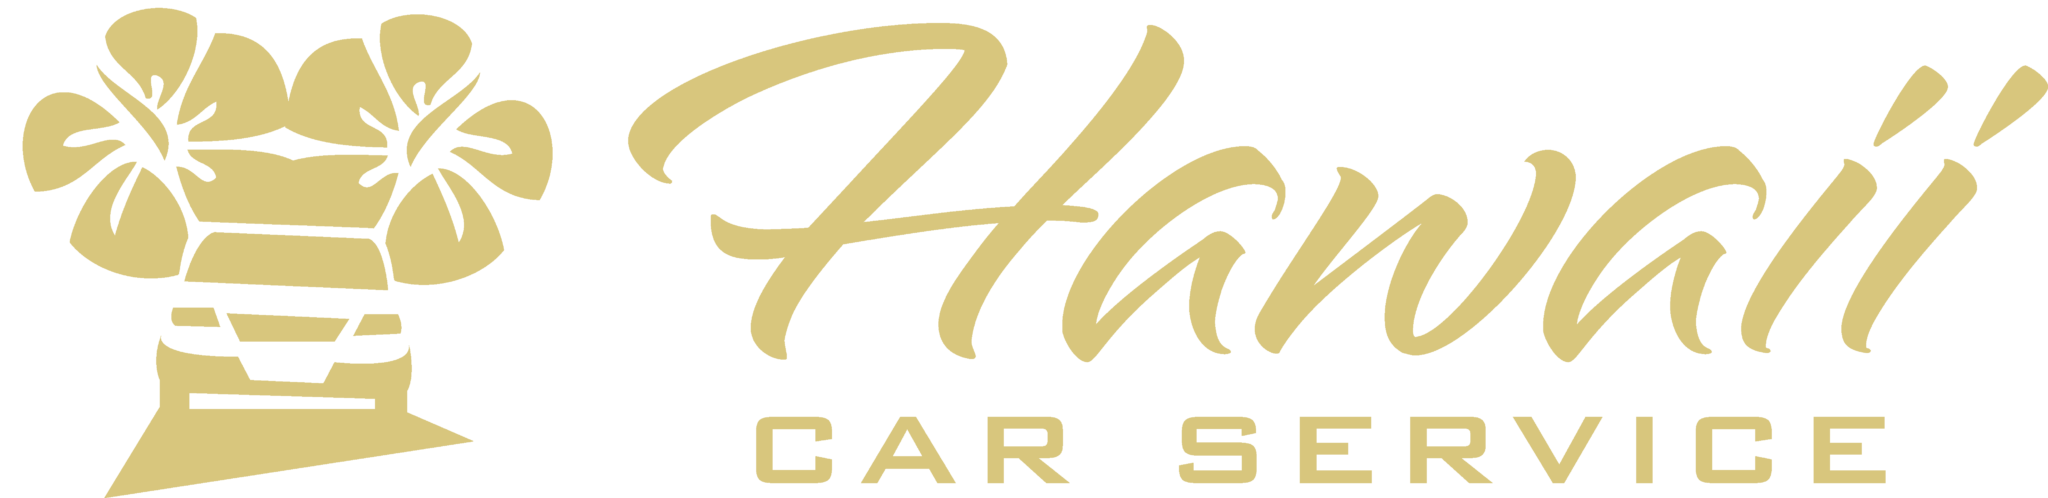 Hawaii Car Service Logo (Gold)